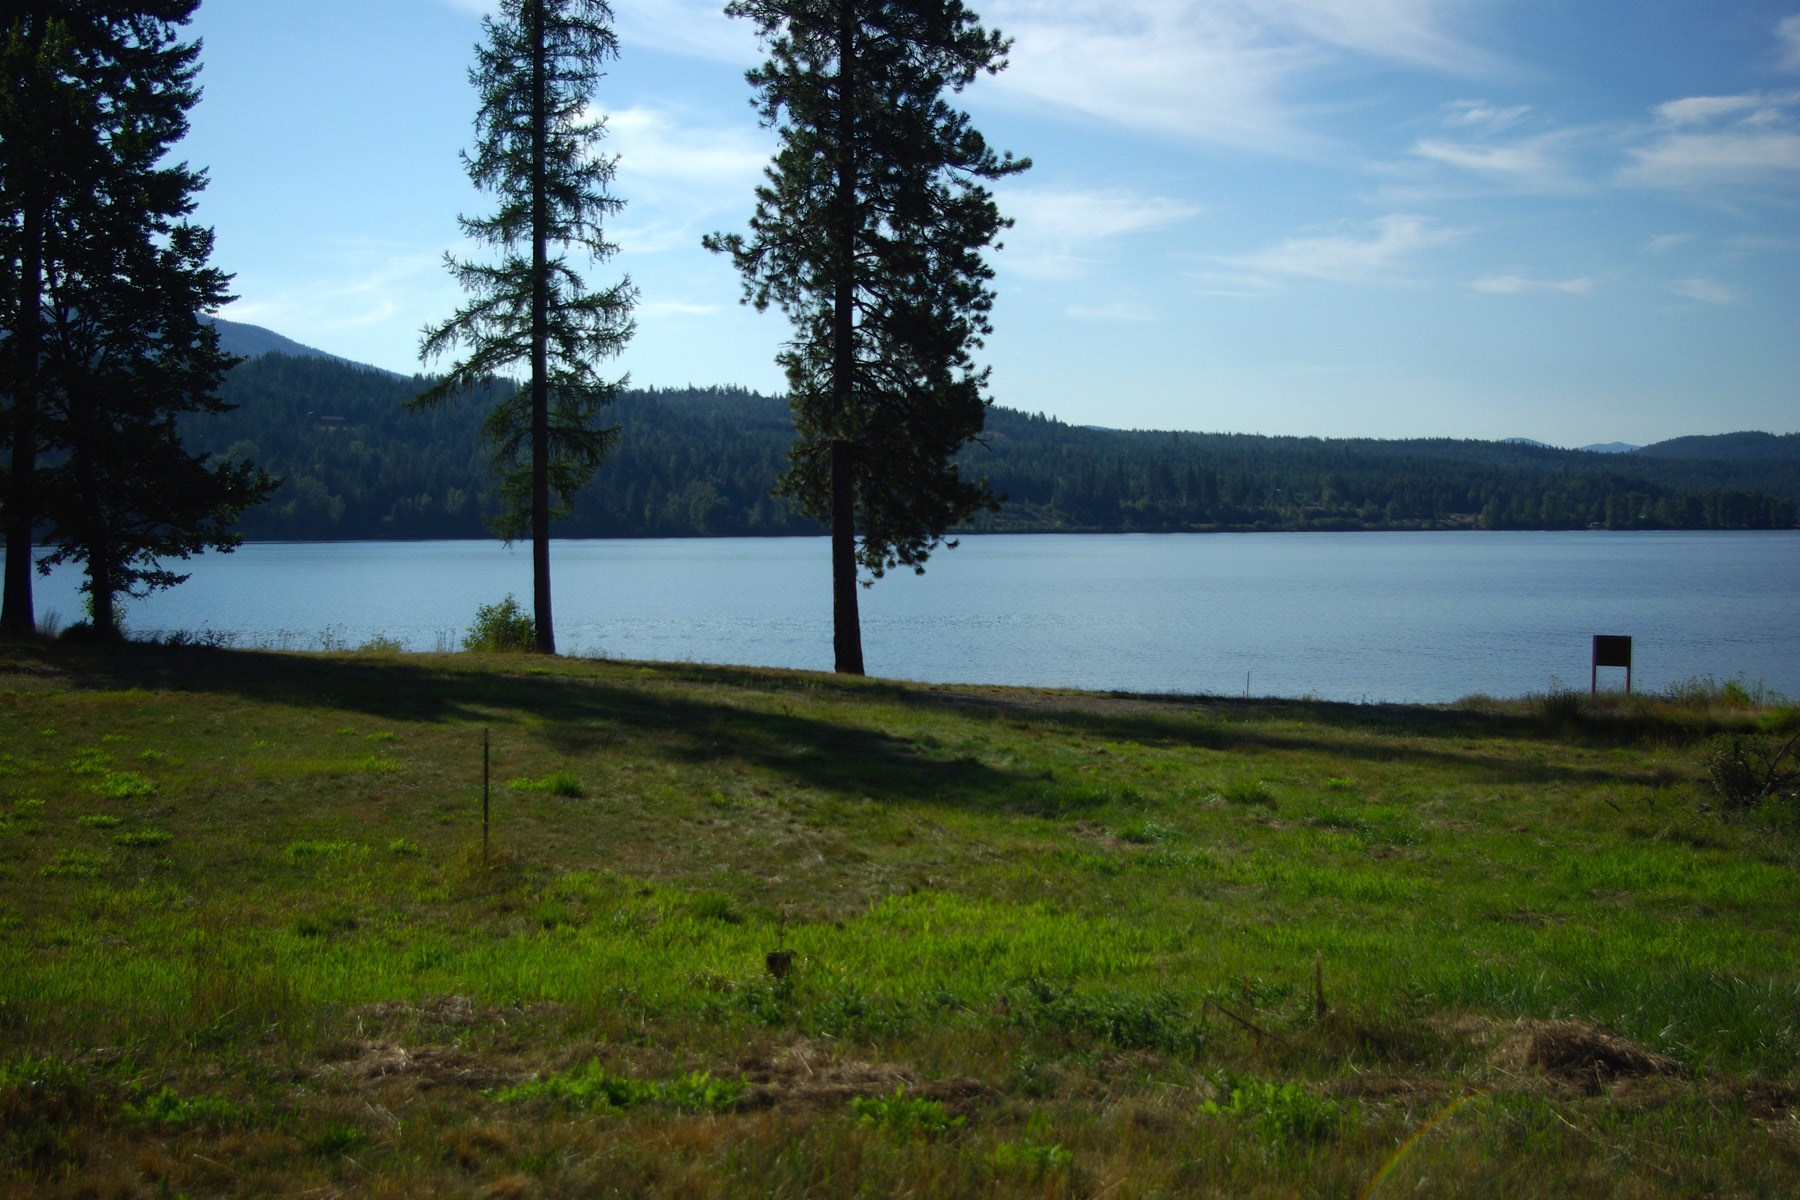 Land for Sale at Your own private sandy beach on Lake Cocolalla, Lot 3 Lot 3 Sandy Beach Ln Cocolalla, Idaho 83813 United States